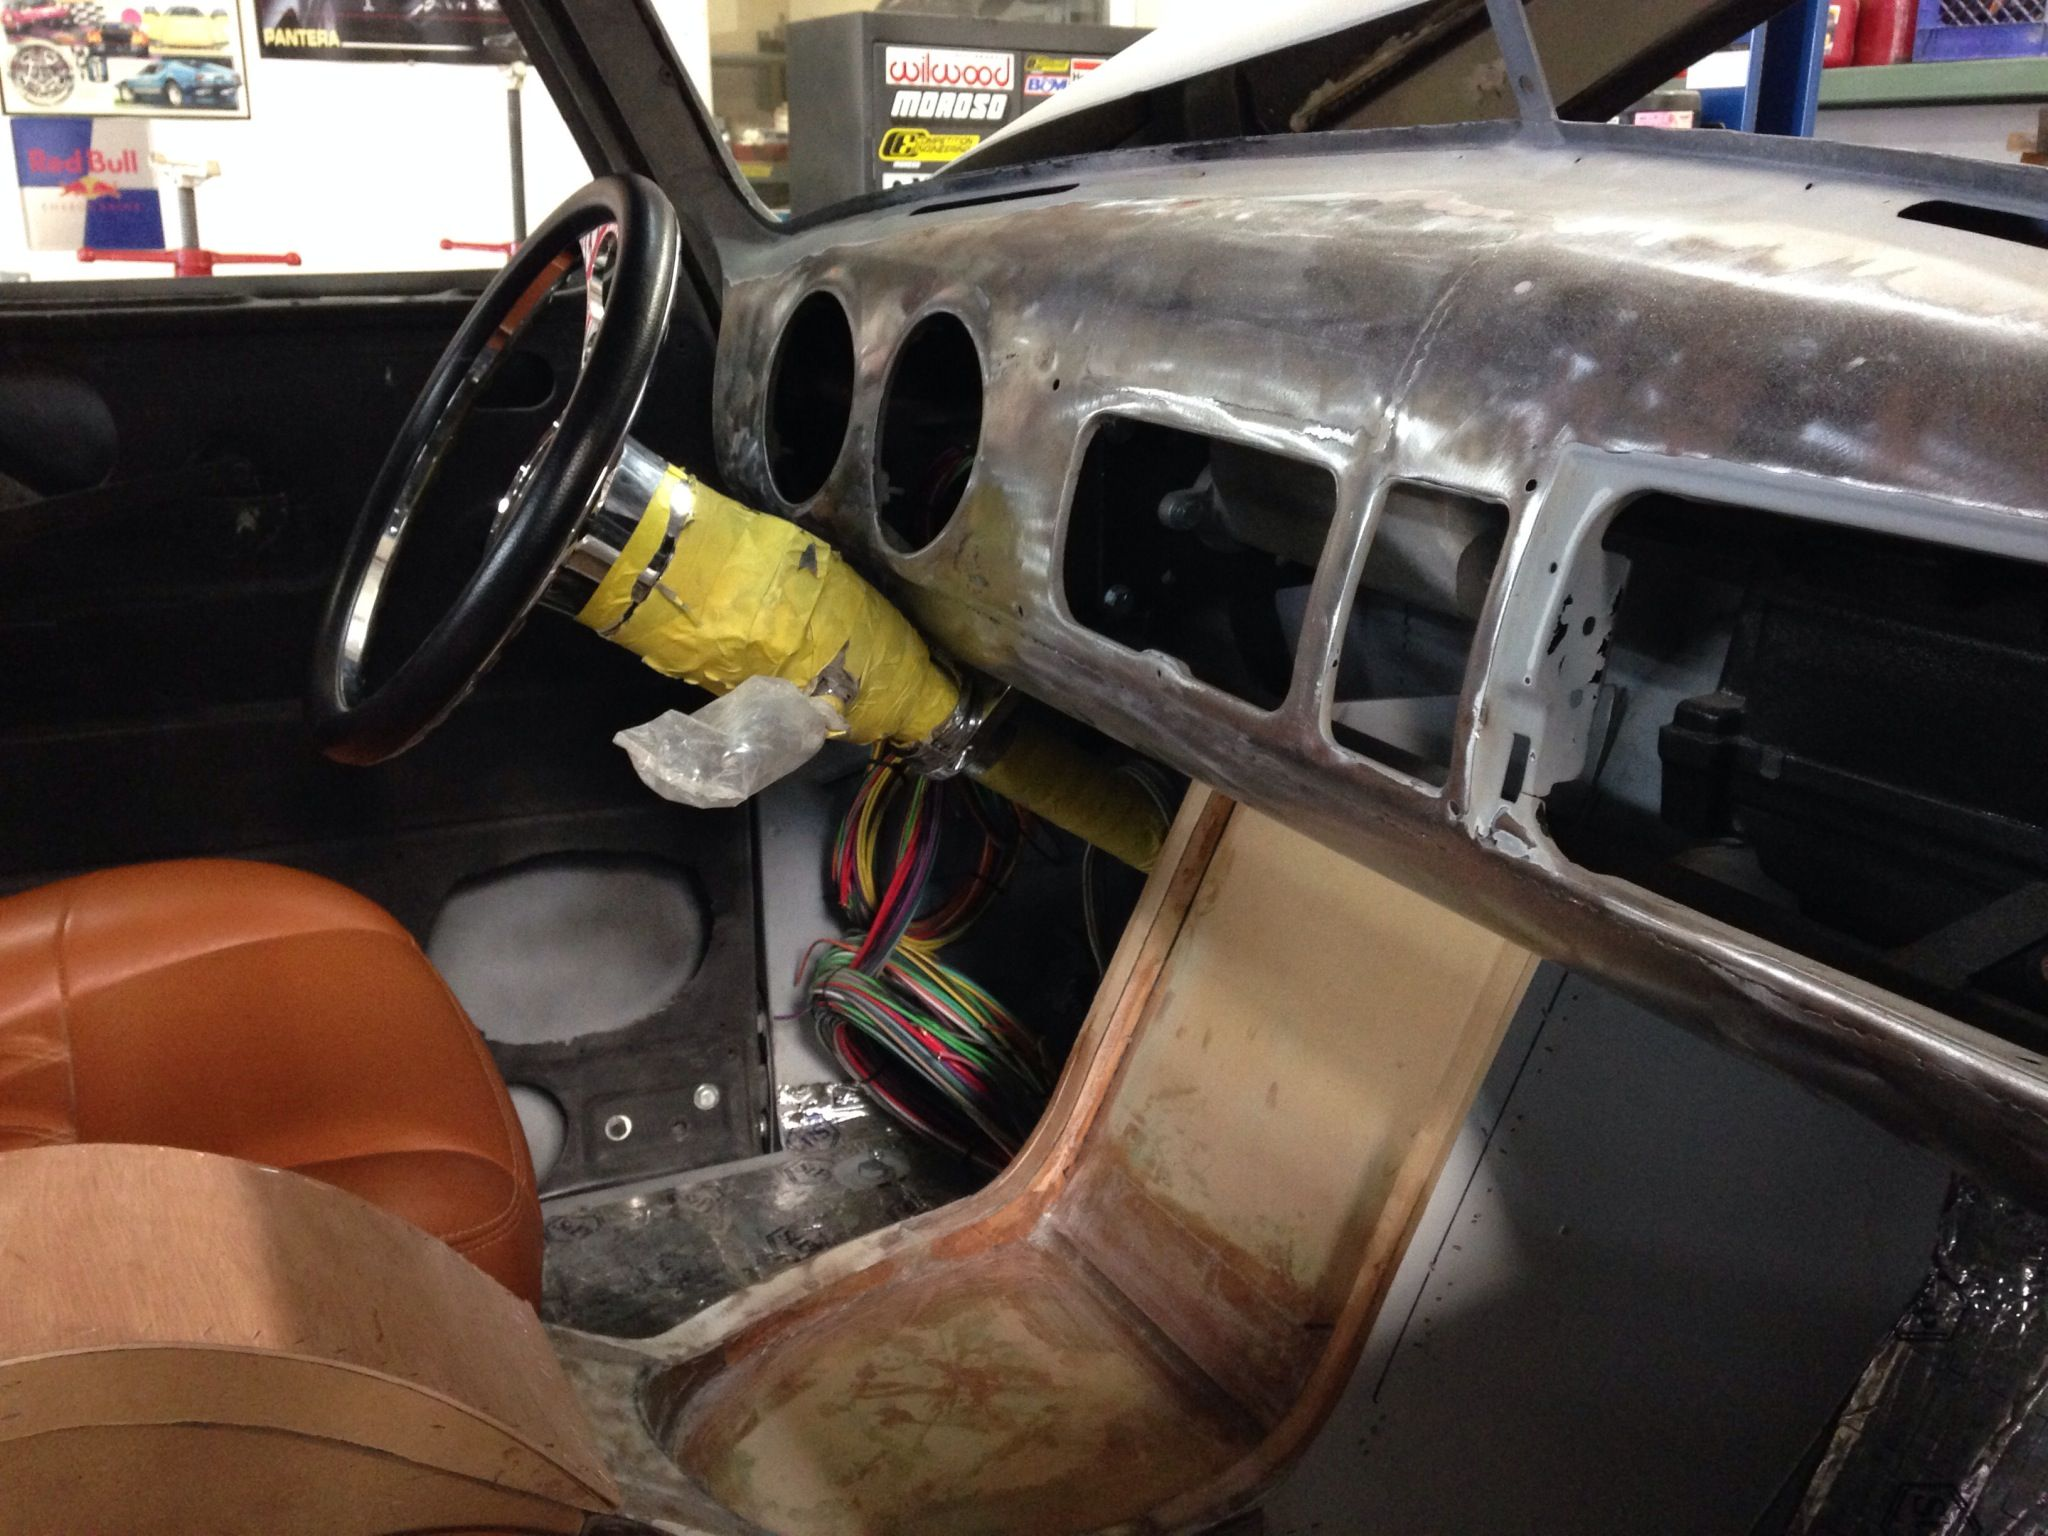 1953 Chevy Truck Interior Work More To Come Chevy Trucks